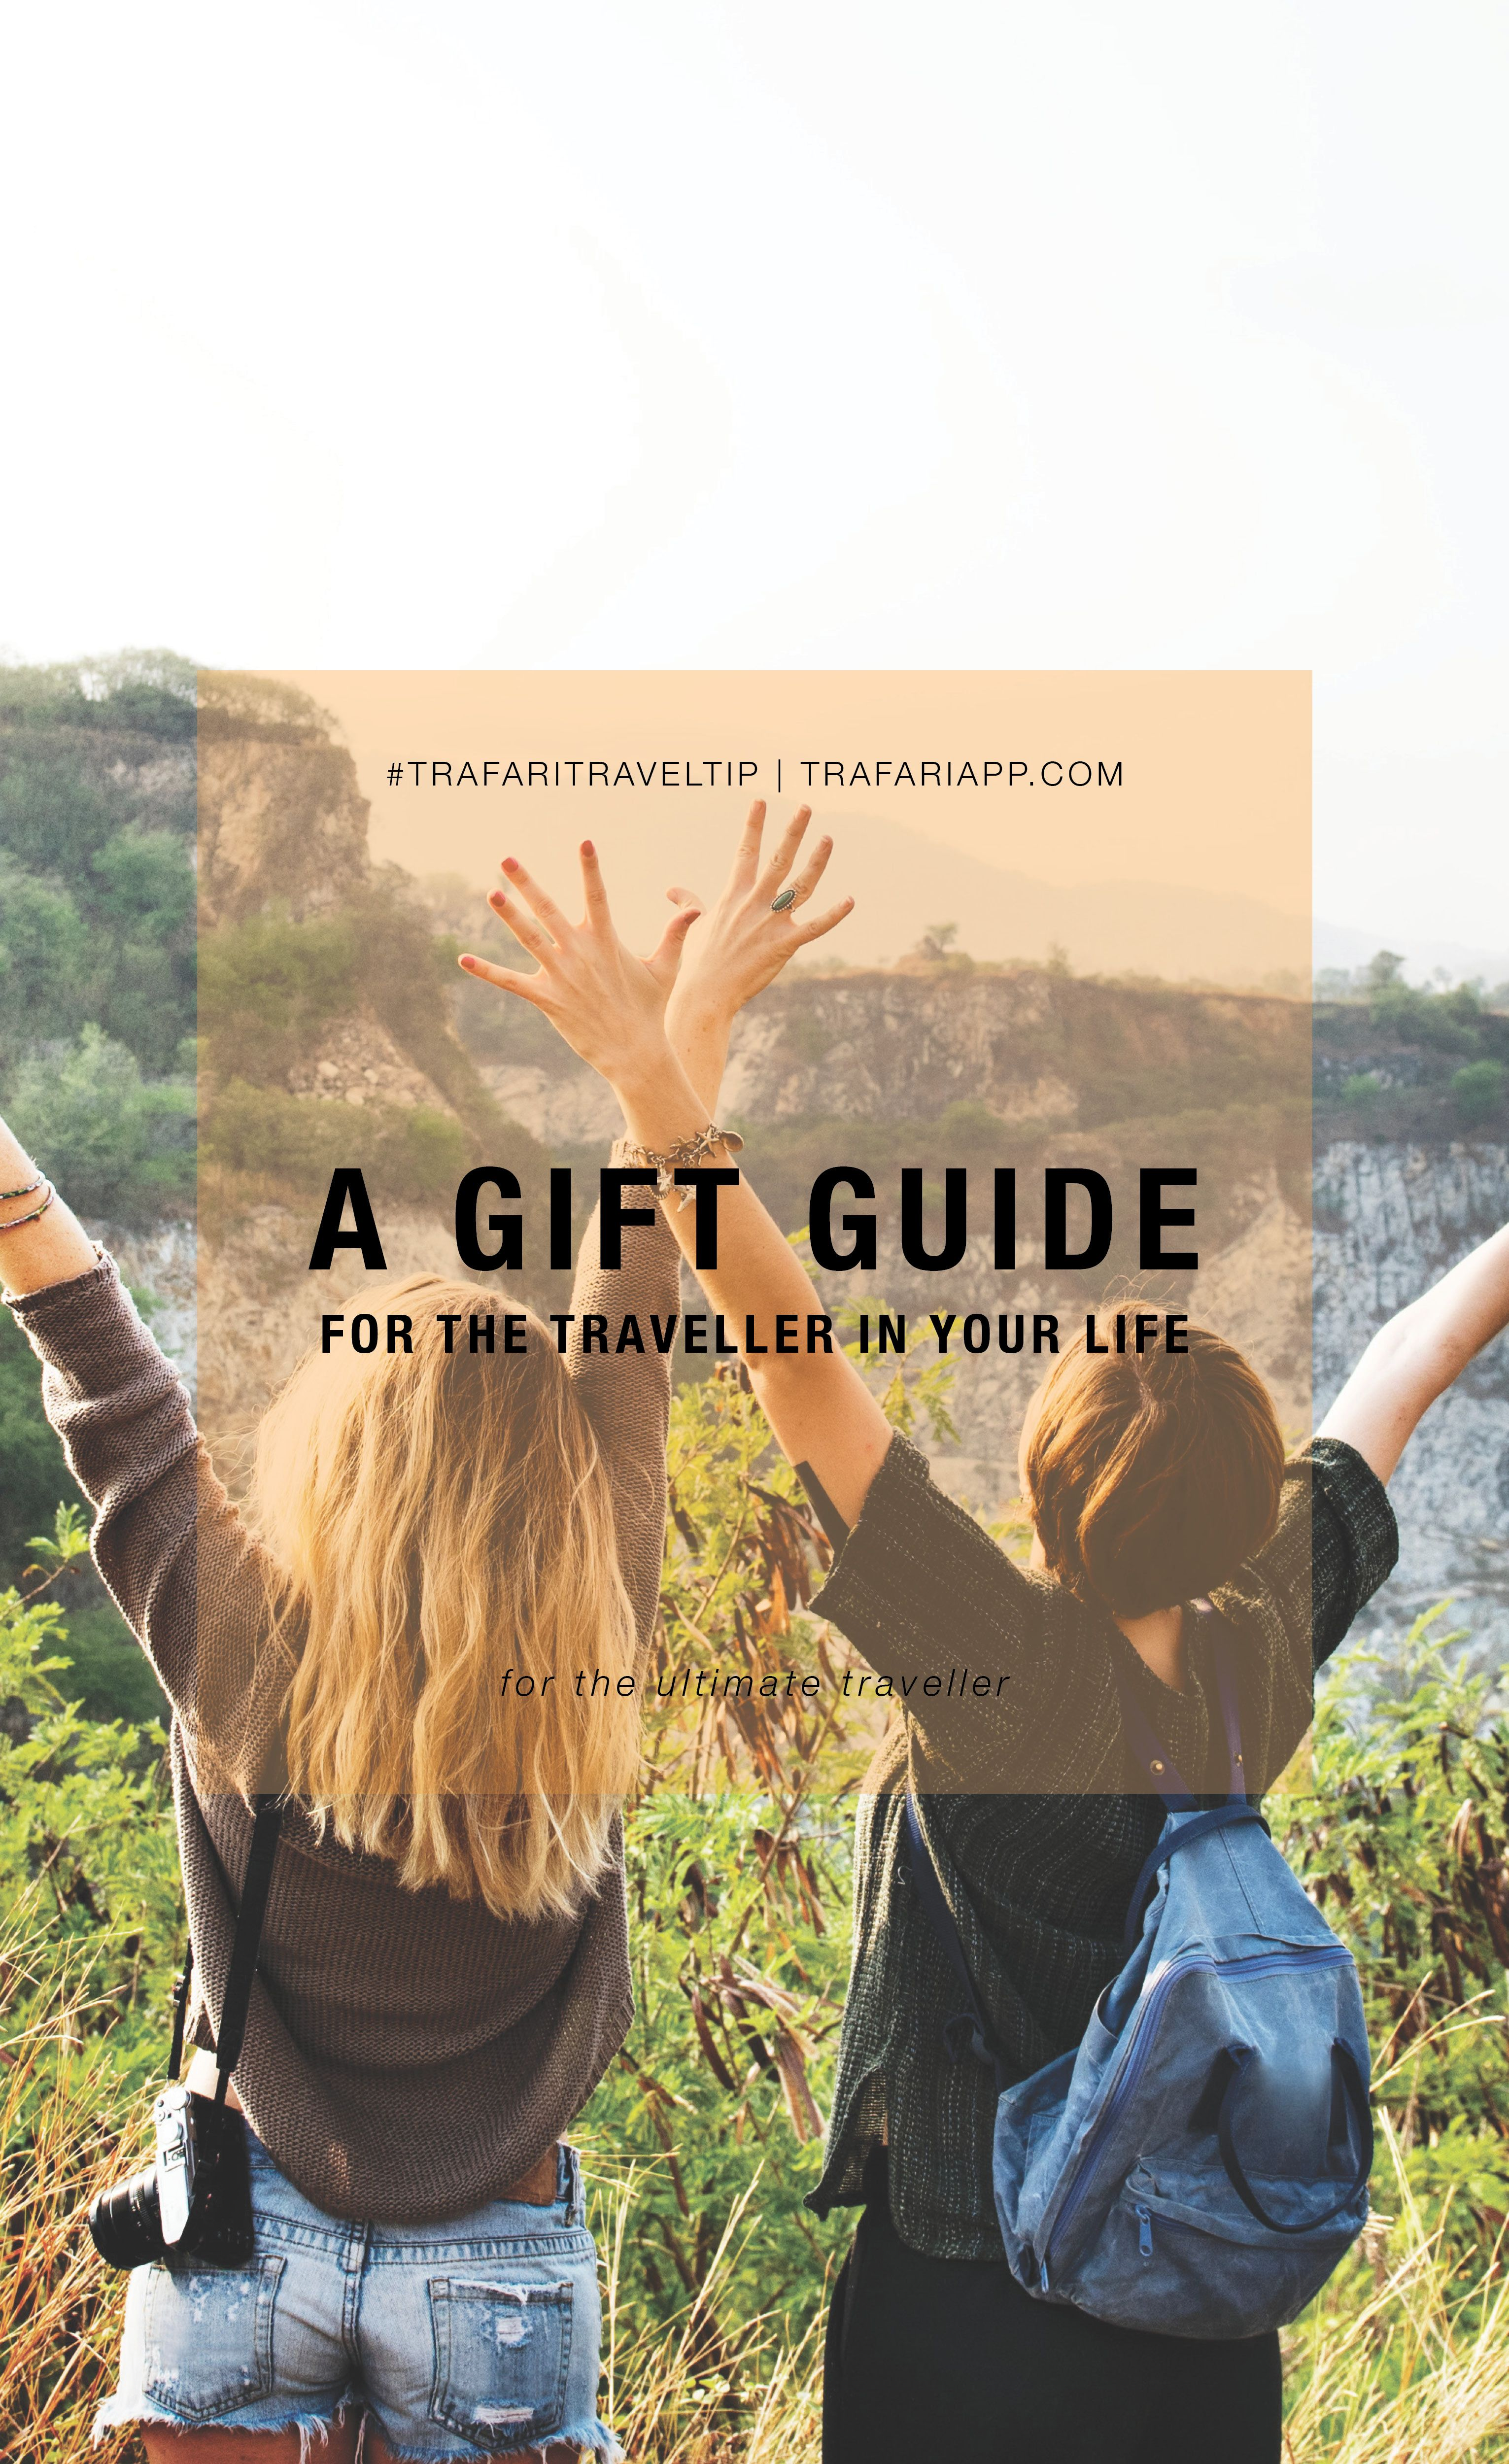 A Gift Guide for the Traveller in Your Life — Trafari